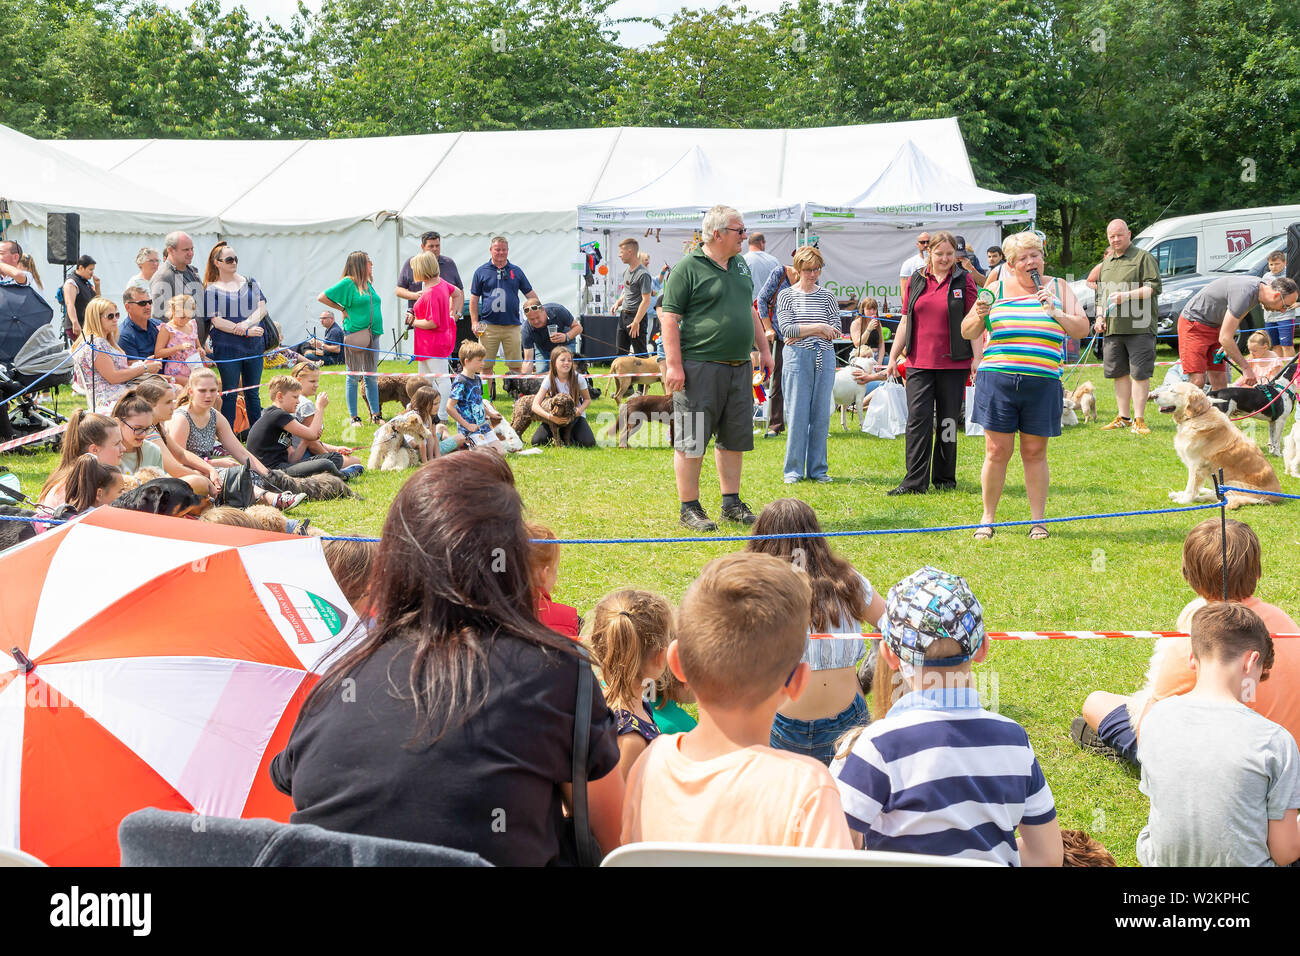 Catch a sausage competition in the dog show at Stockton Heath Festival 2019 Stock Photo